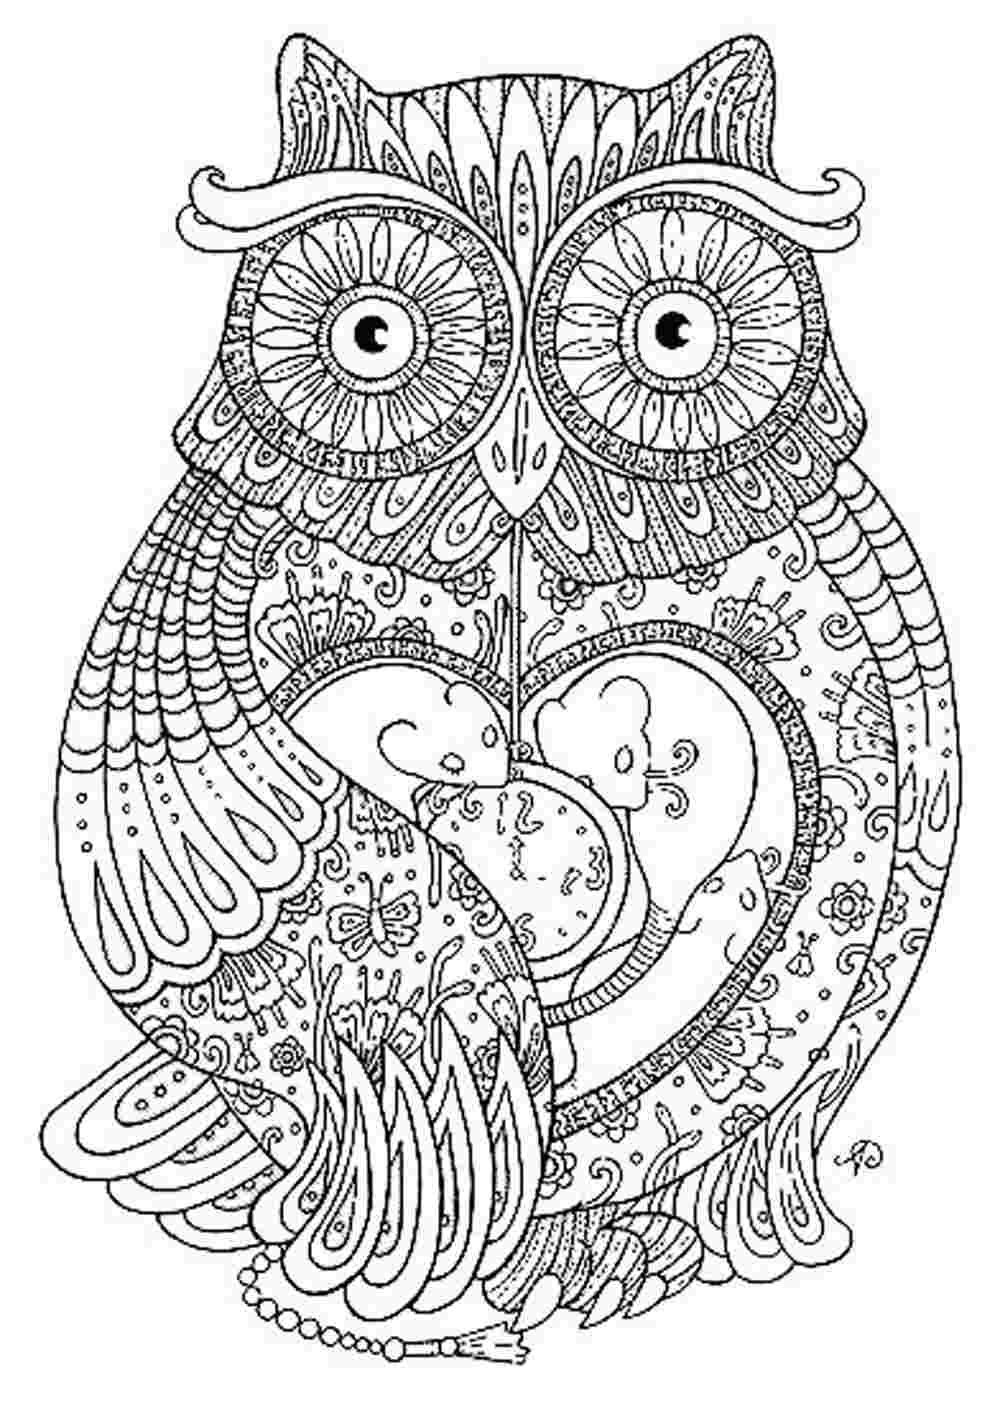 Printable Coloring Pages For Adults - Koloringpages